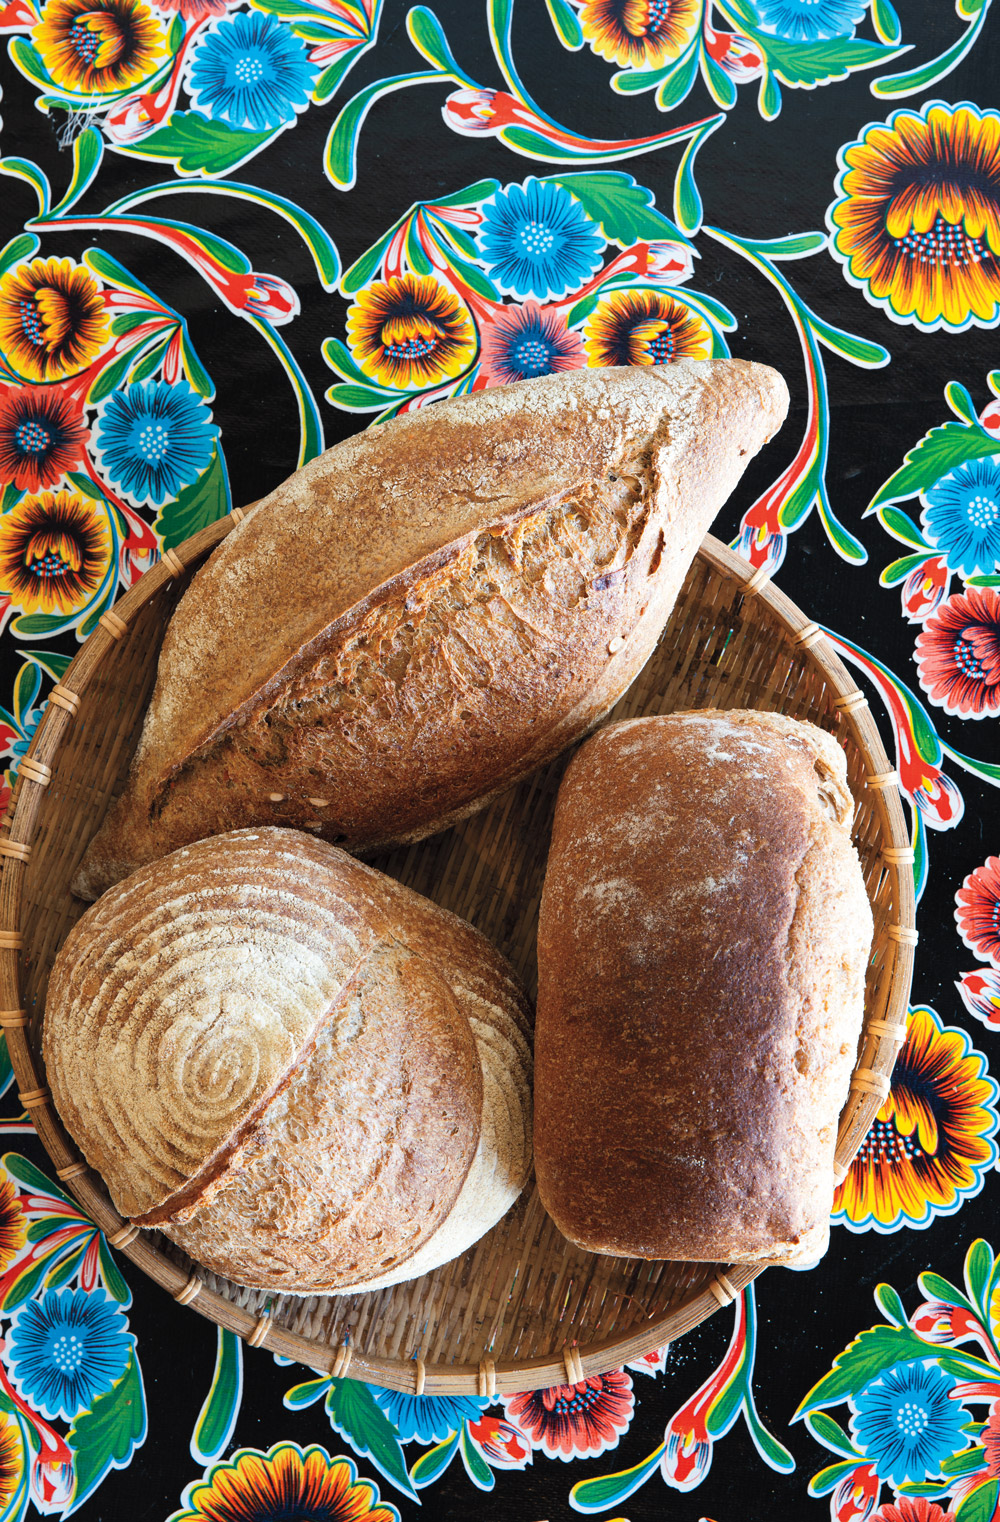 Decatur's La Calavera Bakery